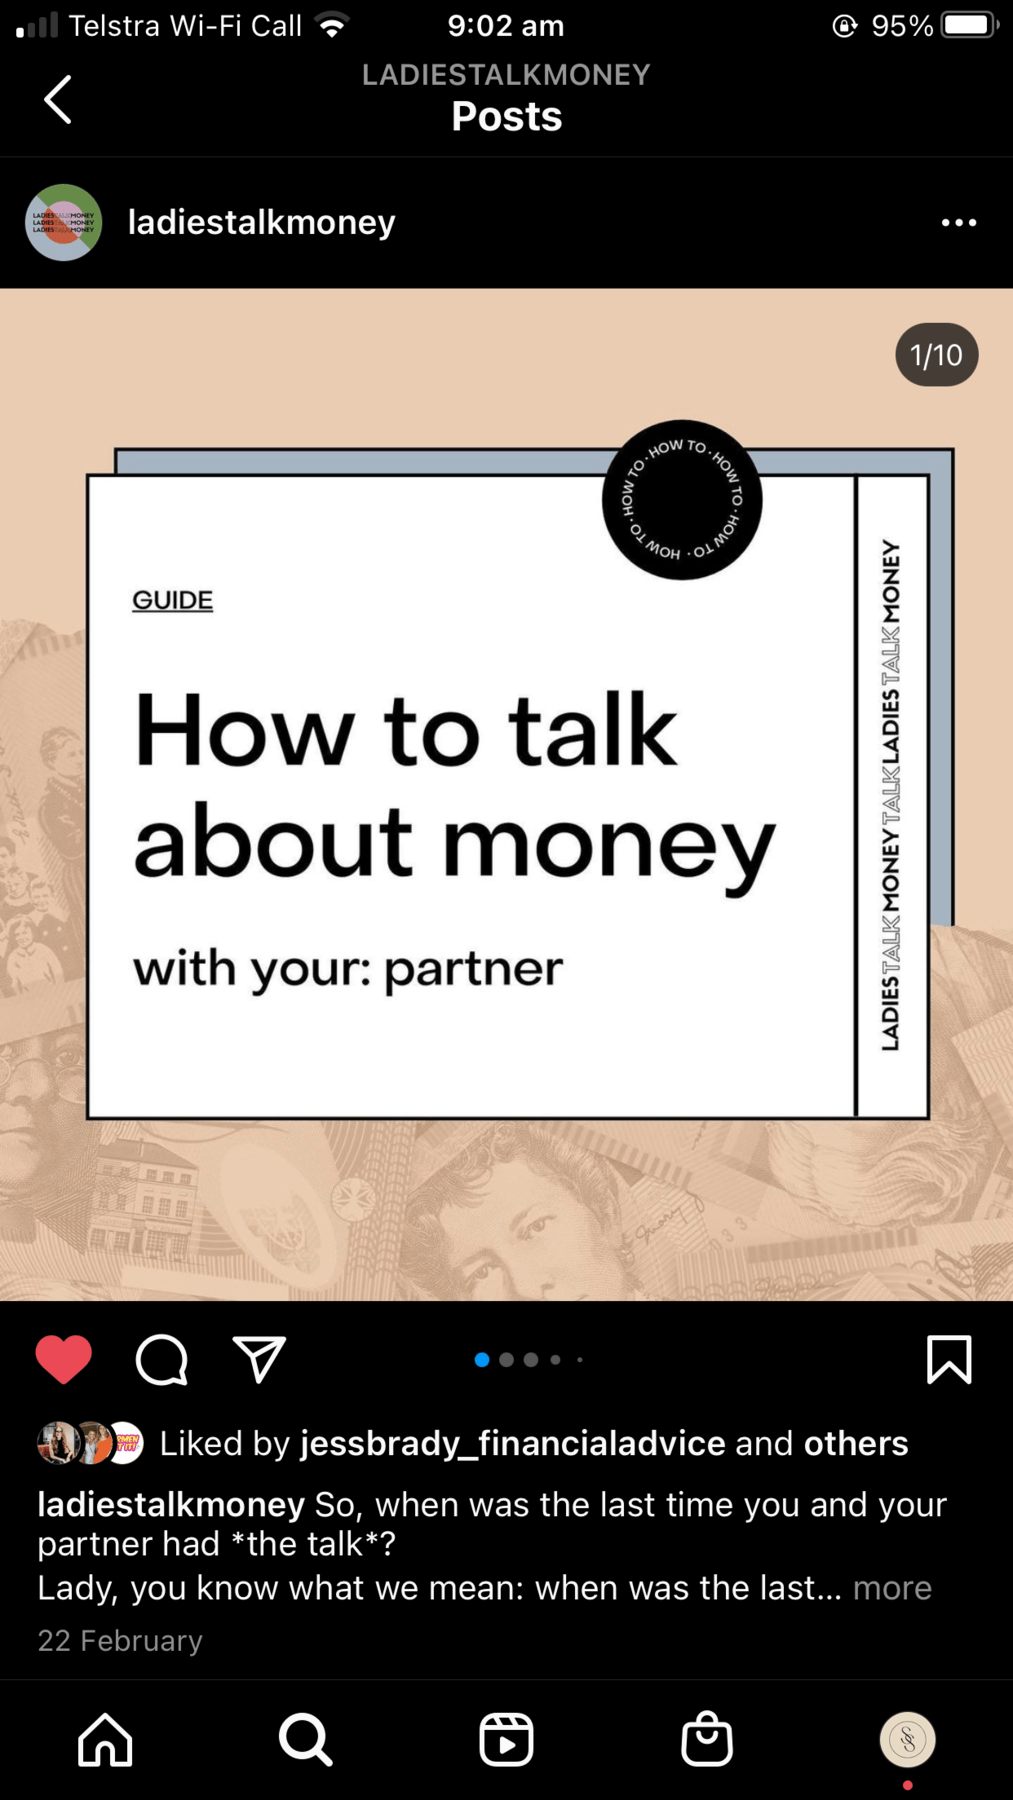 Ladies Talk Money carousel example how to talk about money with your partner slide one